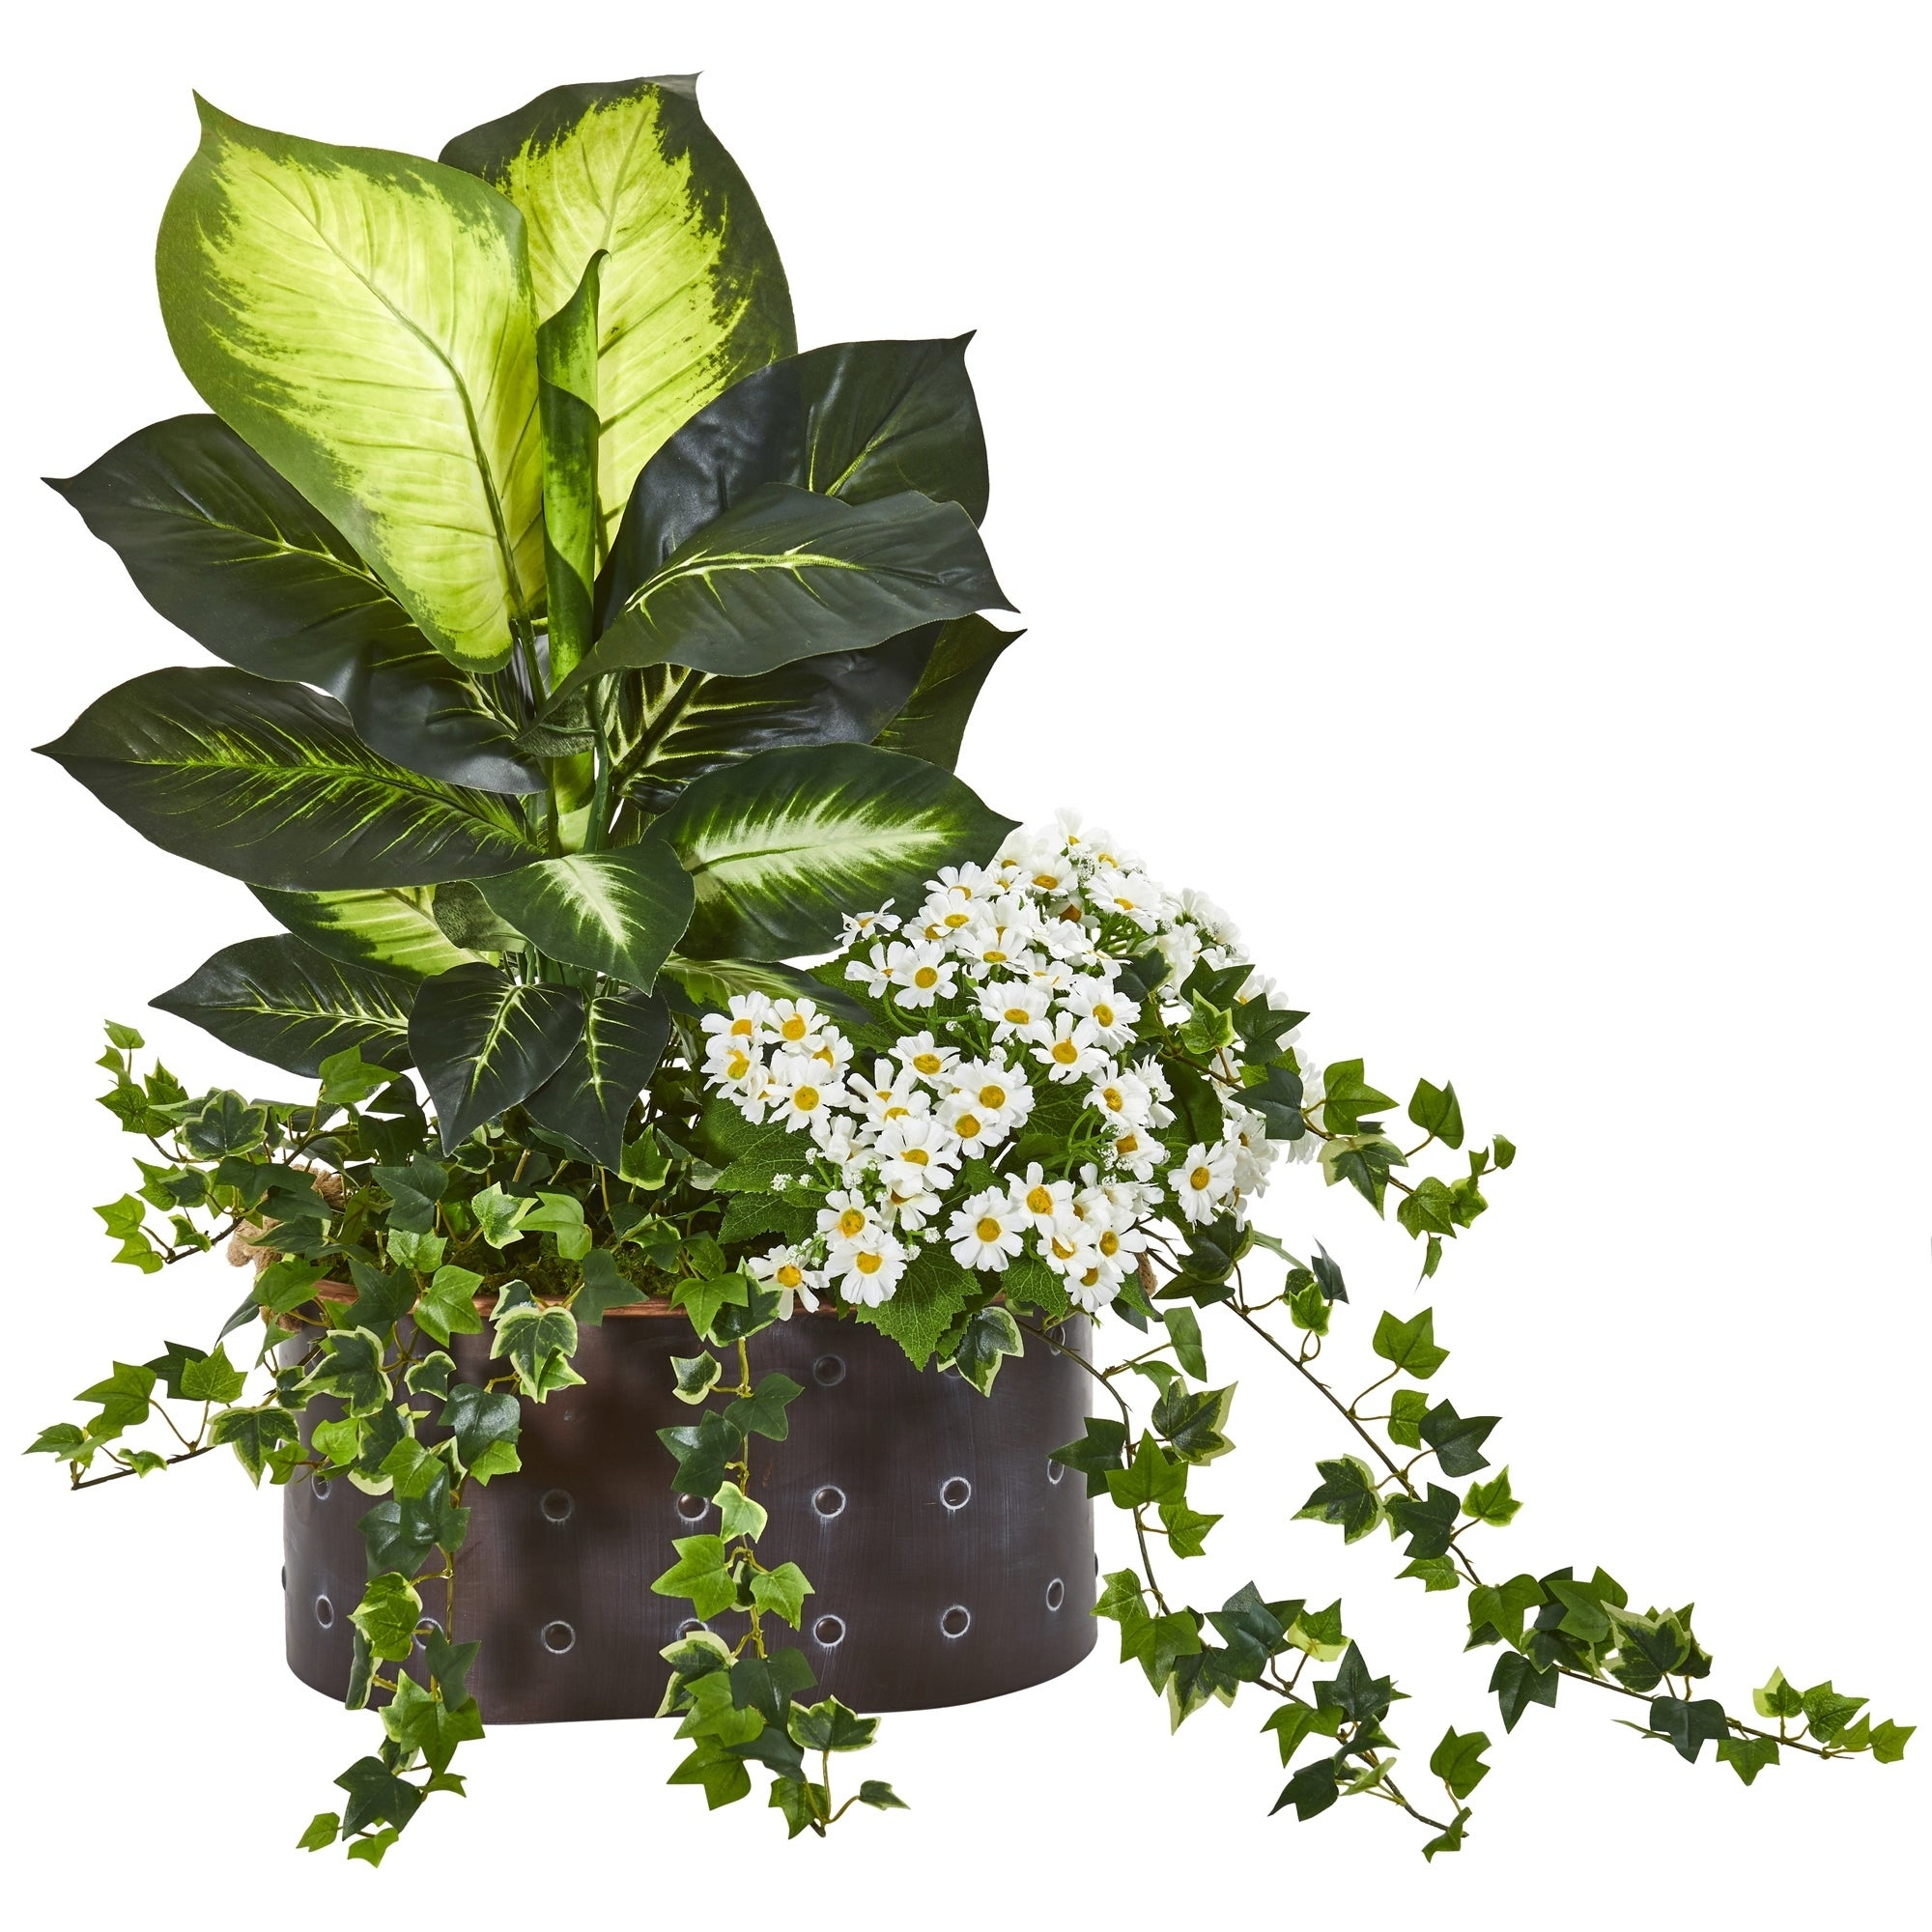 29 Golden Dieffenbachia, Ivy and Daisy Artificial Plant in Planter